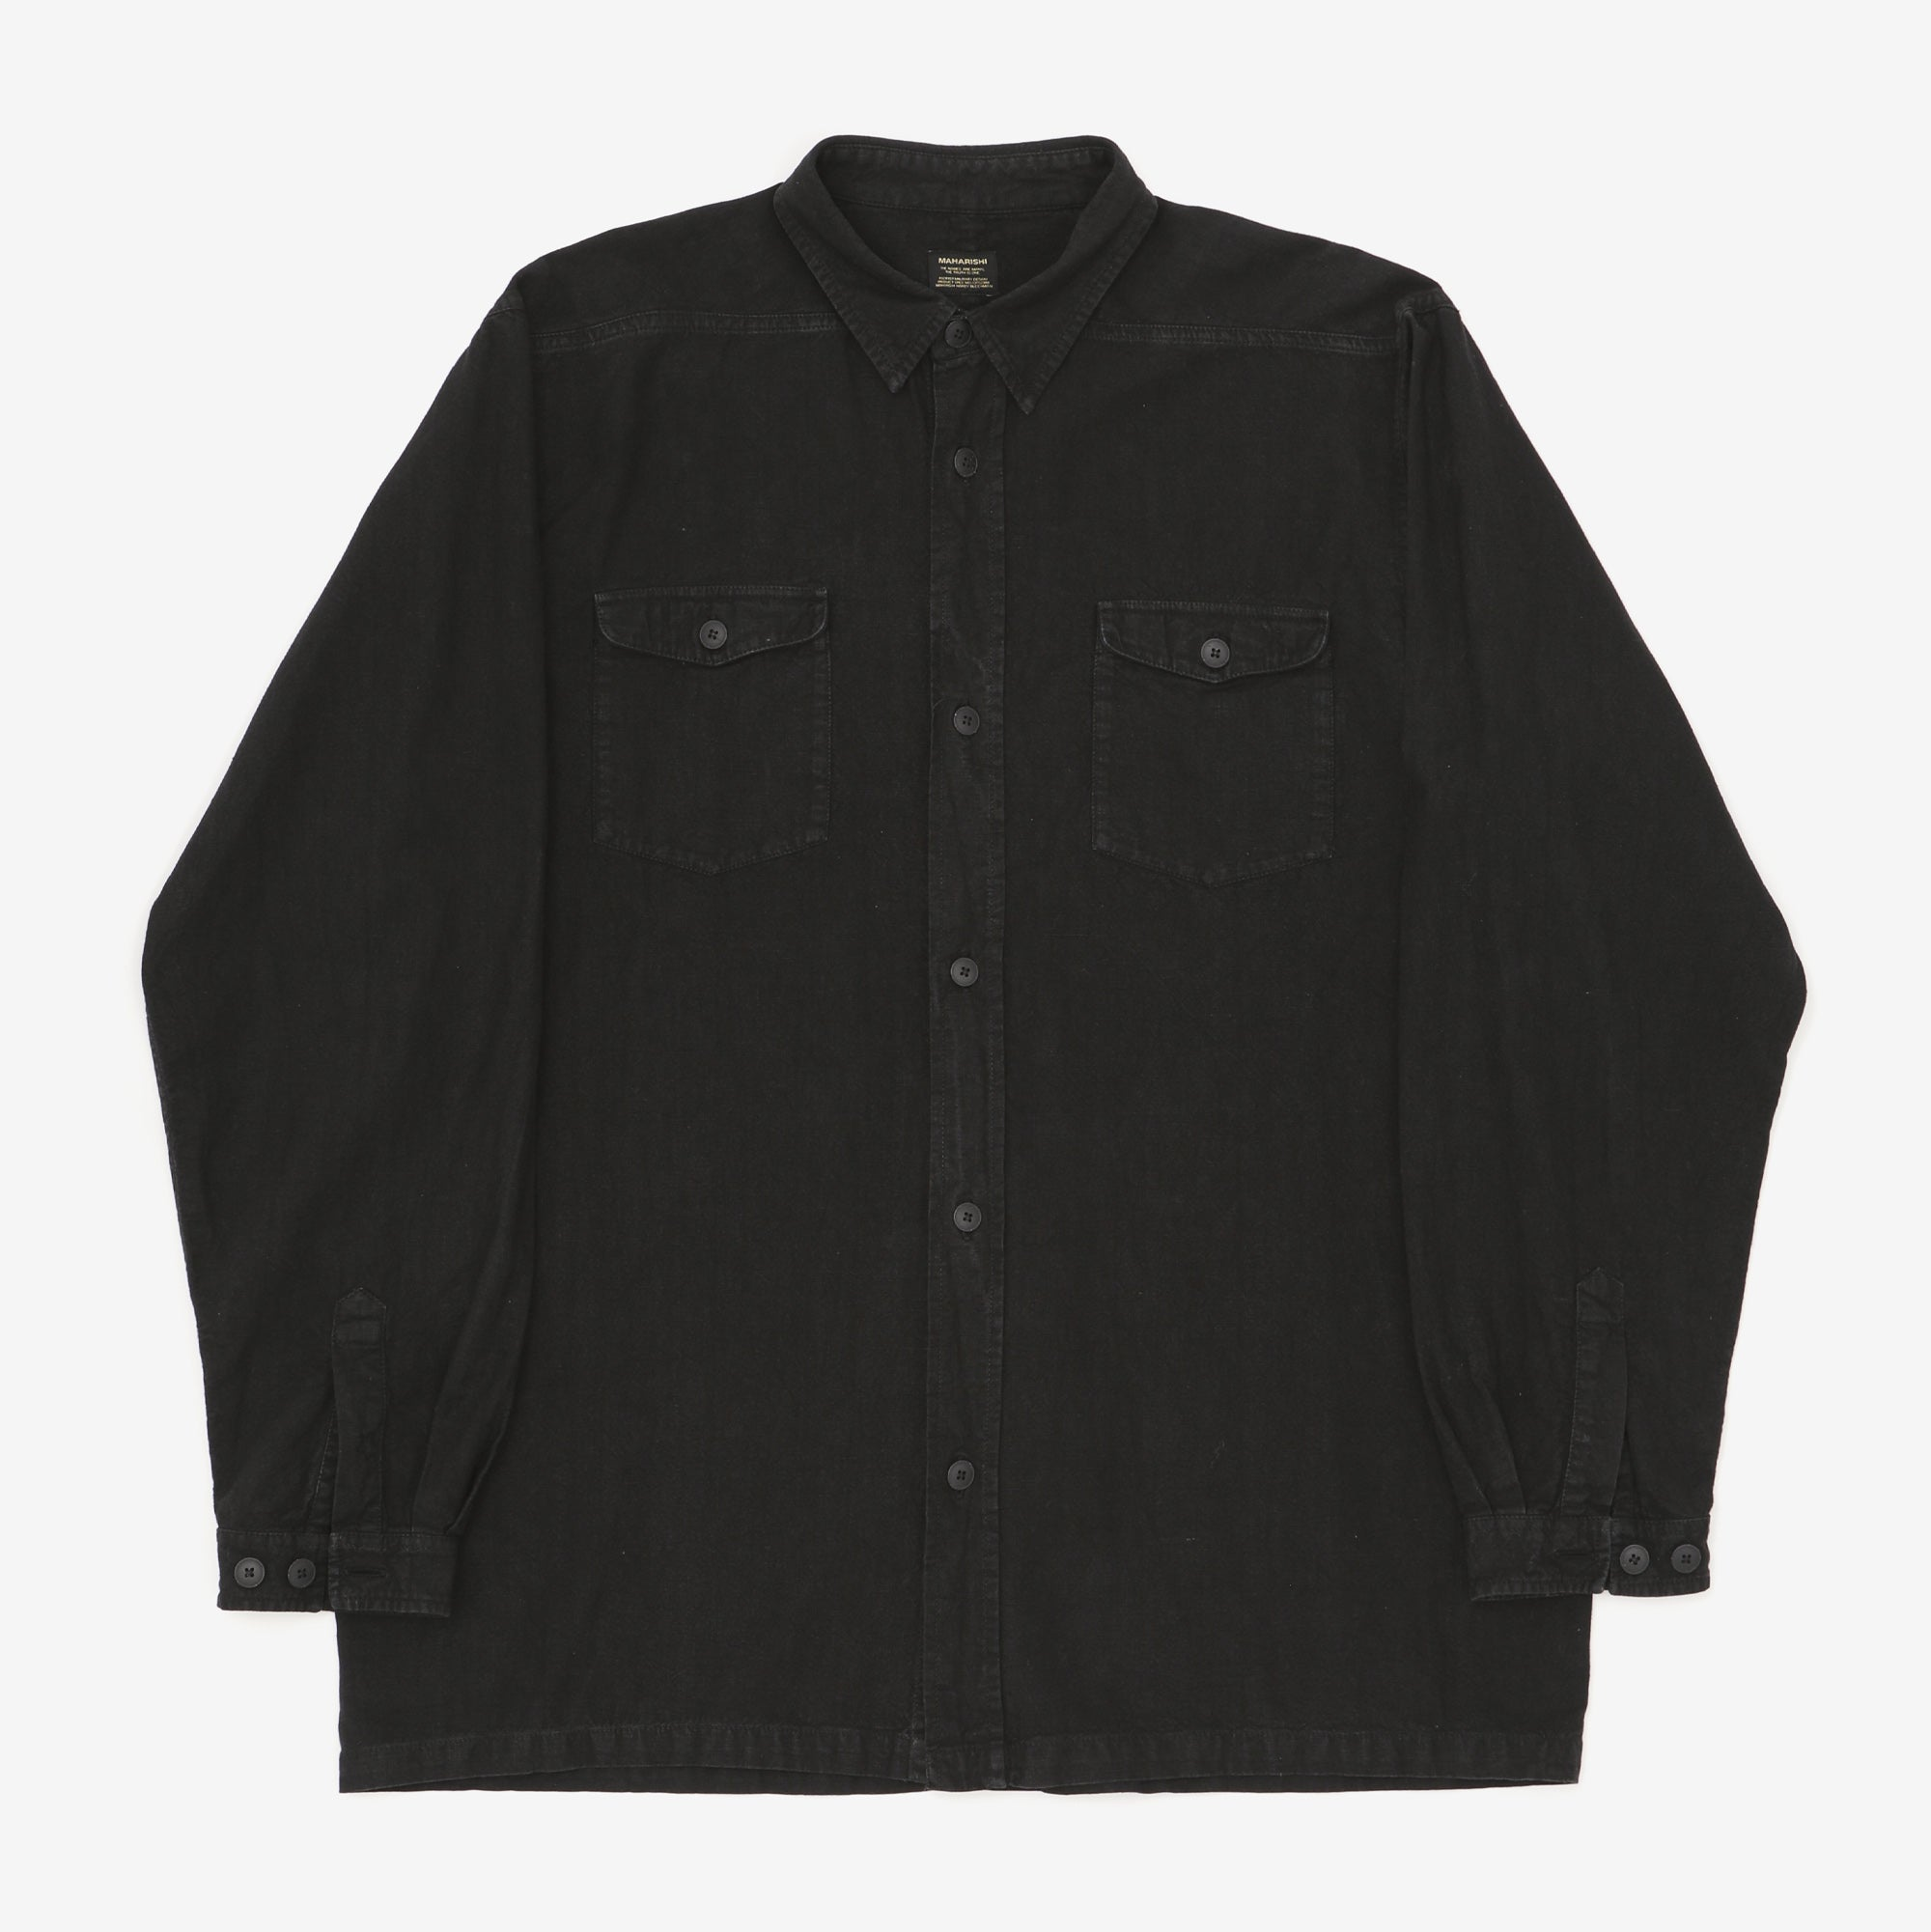 Crushed Hemp 170 Work Shirt